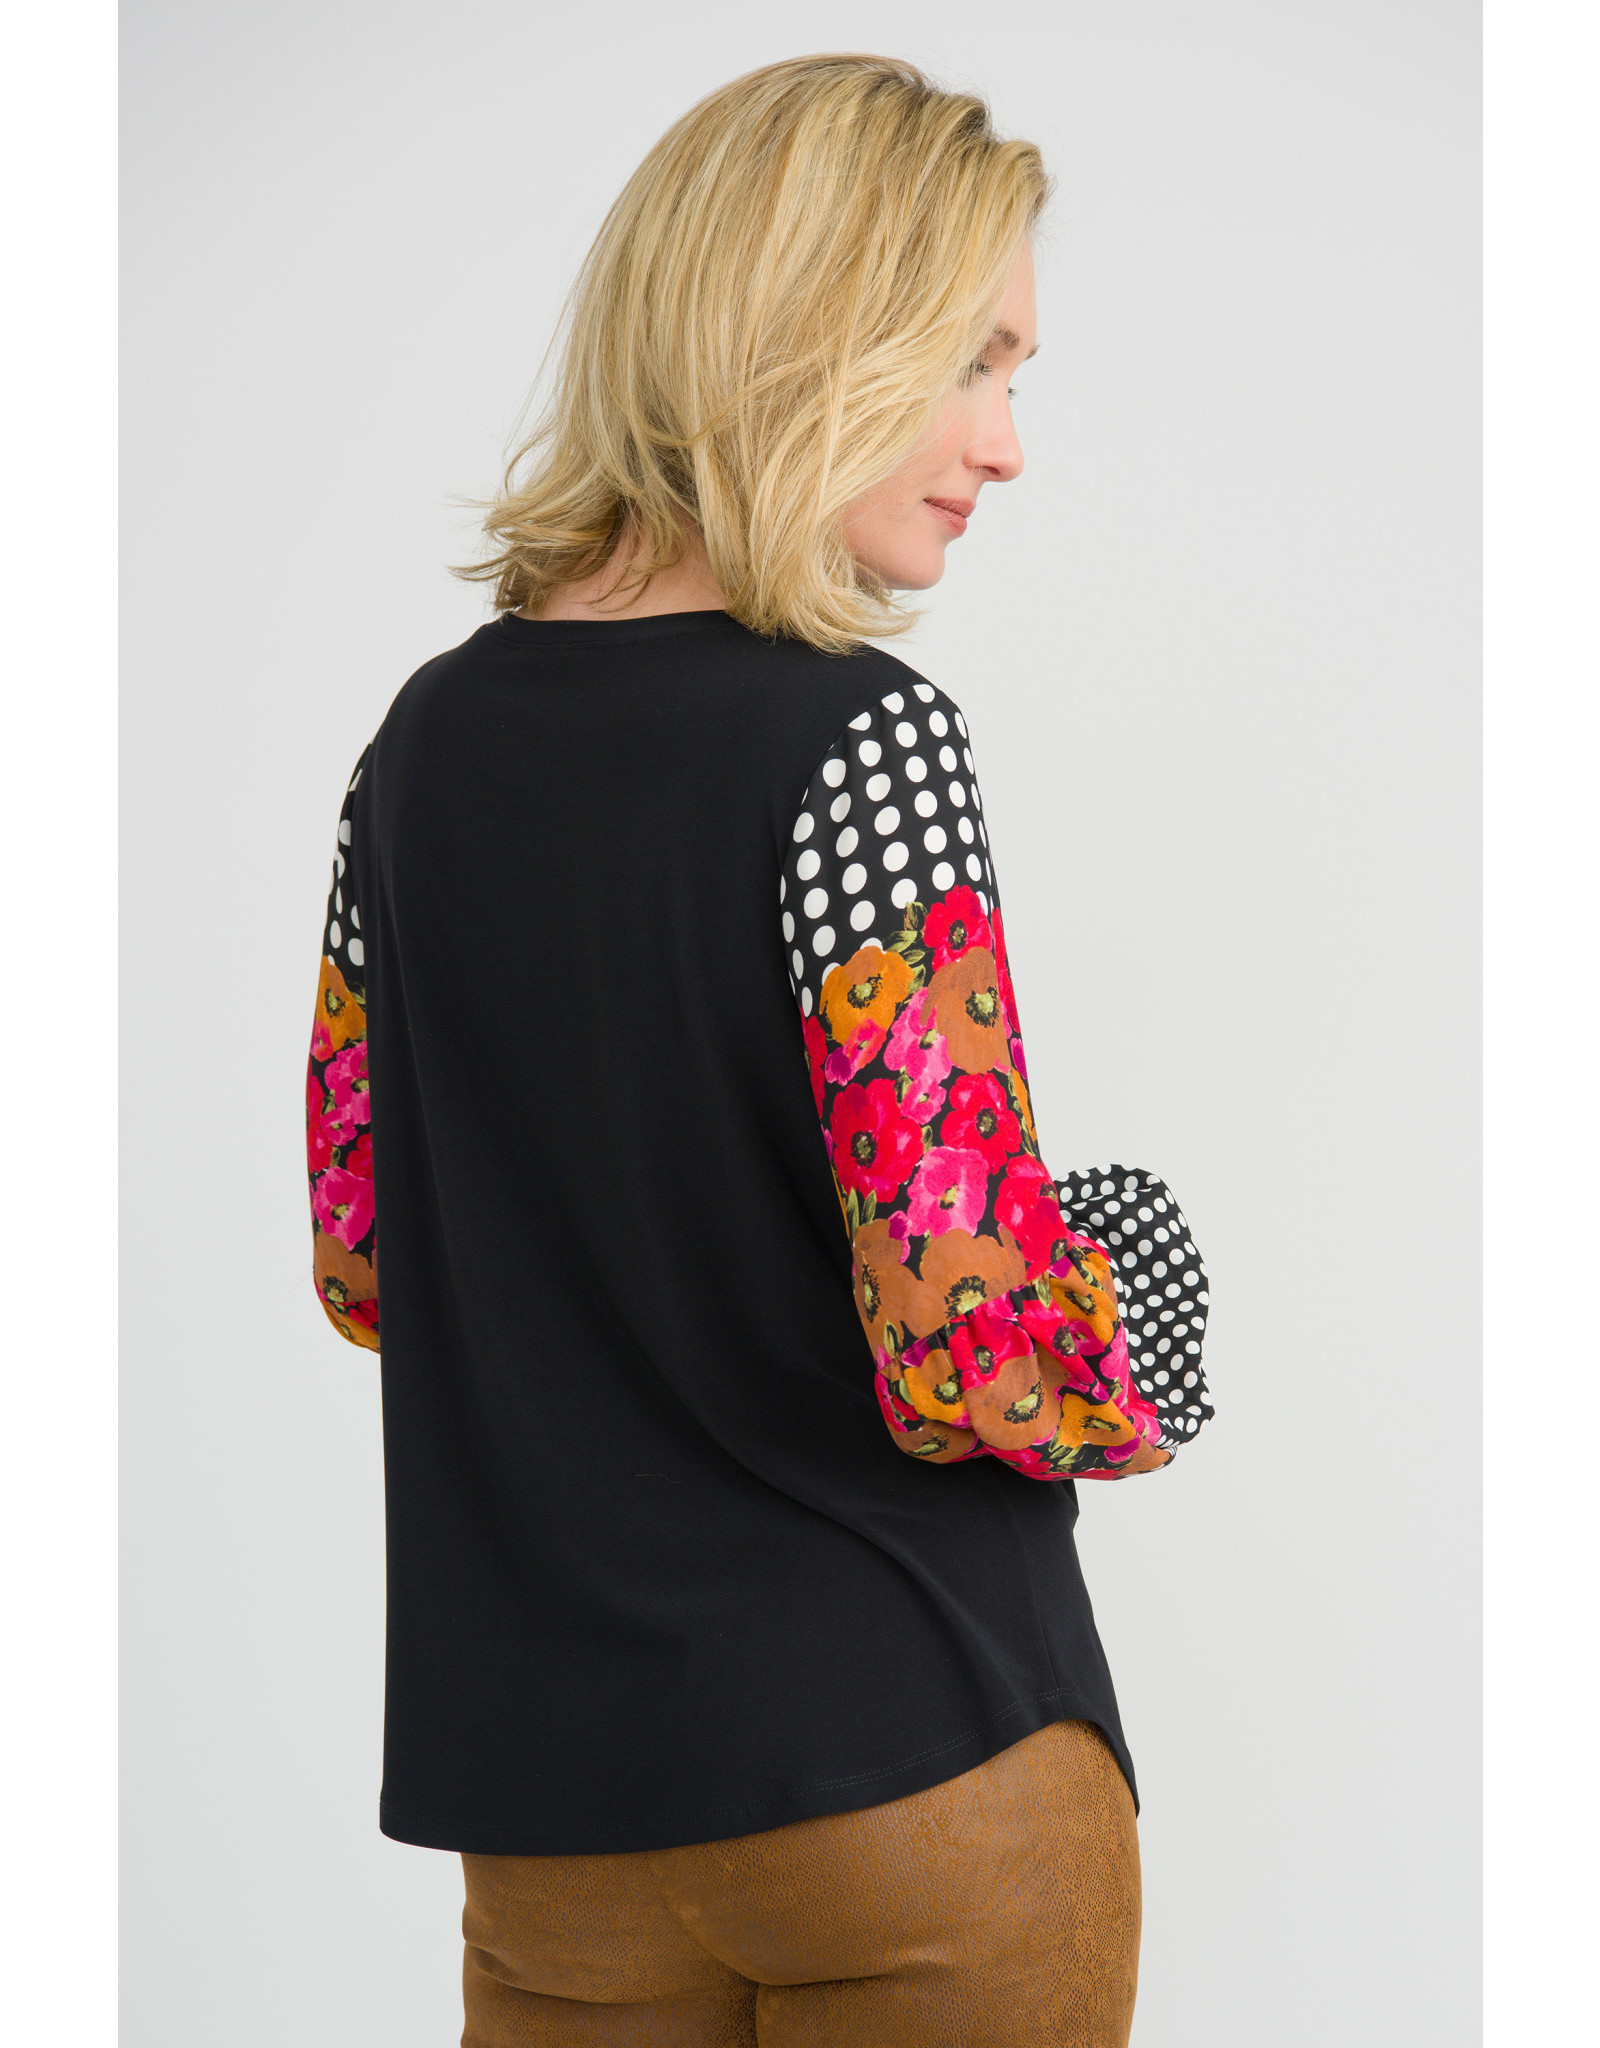 Joseph Ribkoff Black Top With Floral Sleeves